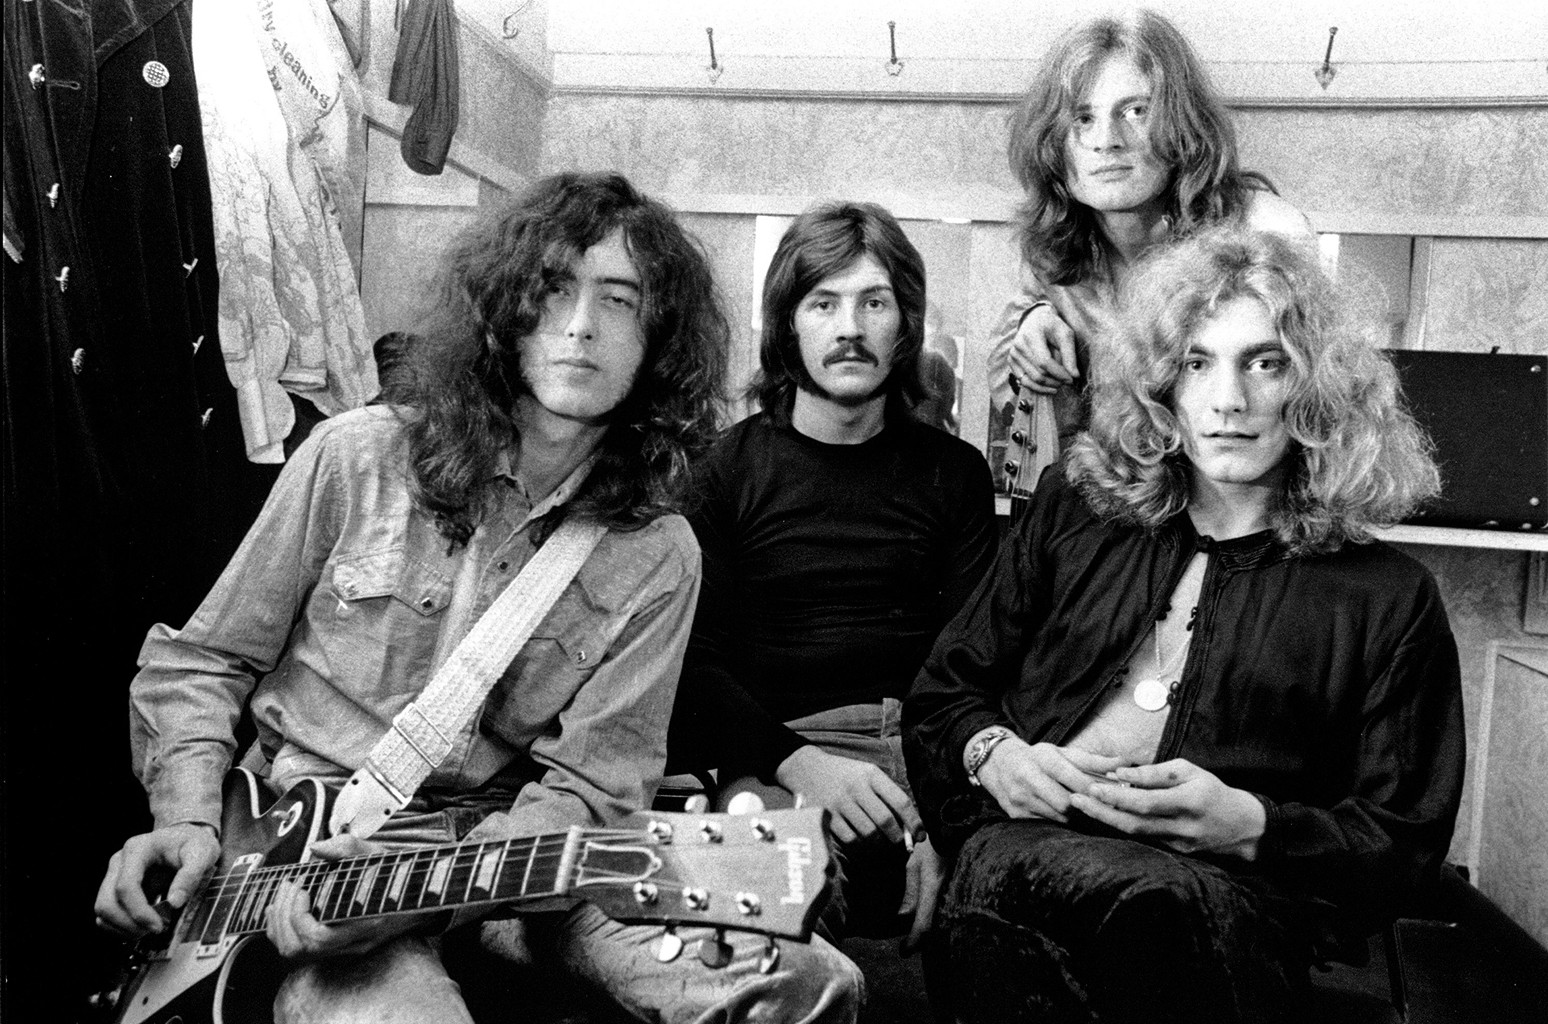 Led Zeppelin photographed circa 1969.